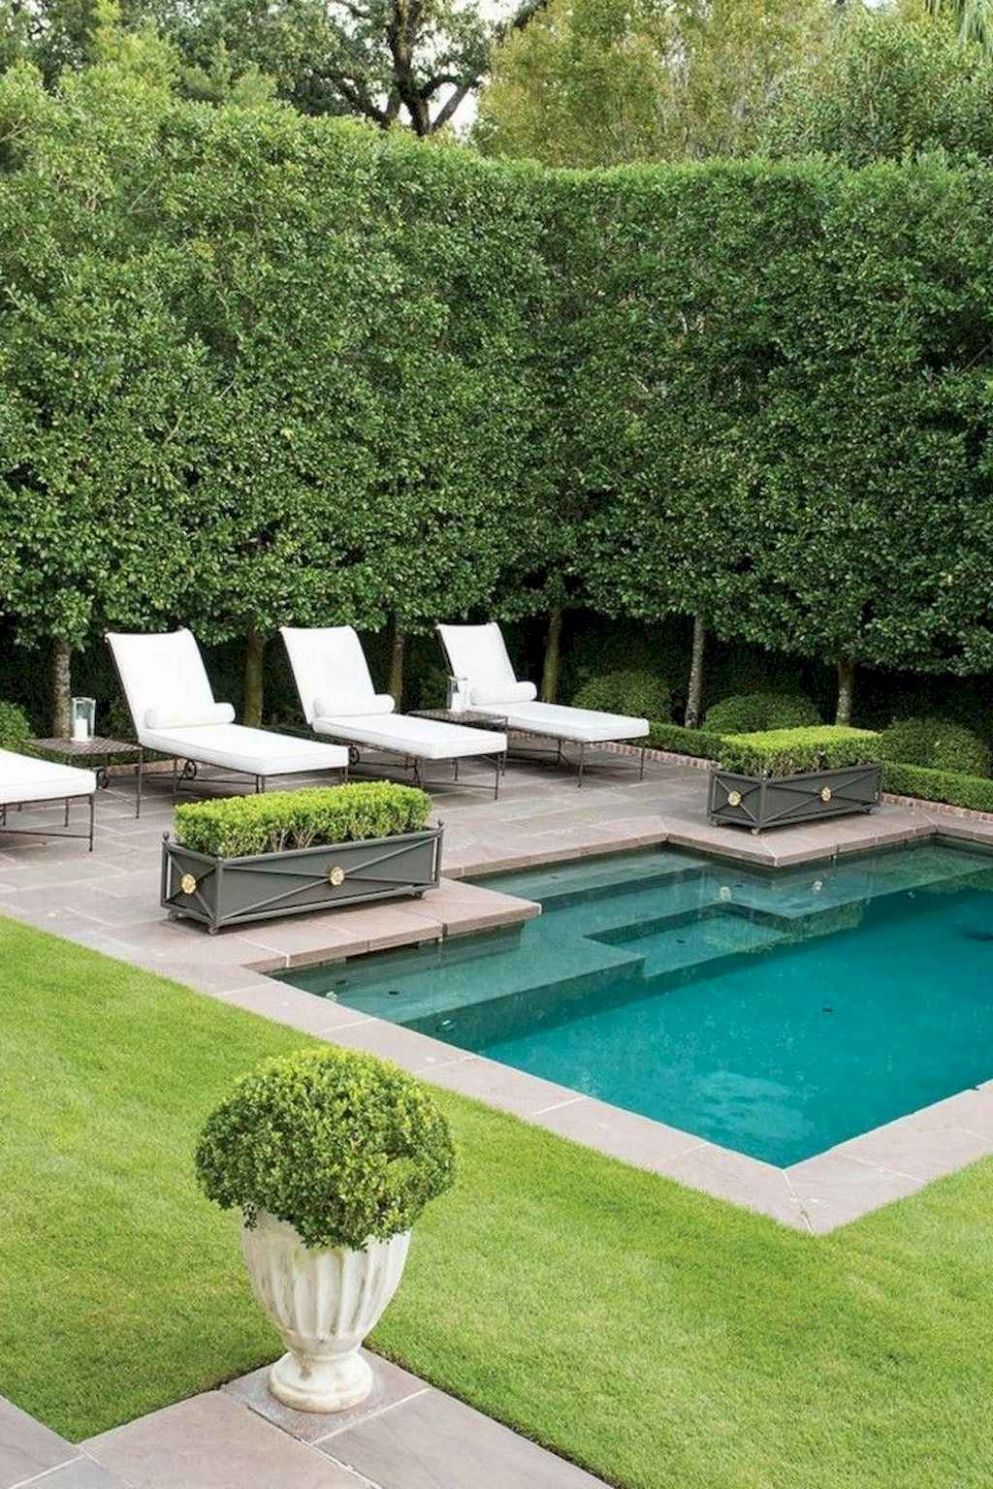 12 Small Backyard Swimming Pool Ideas and Design - architeworks